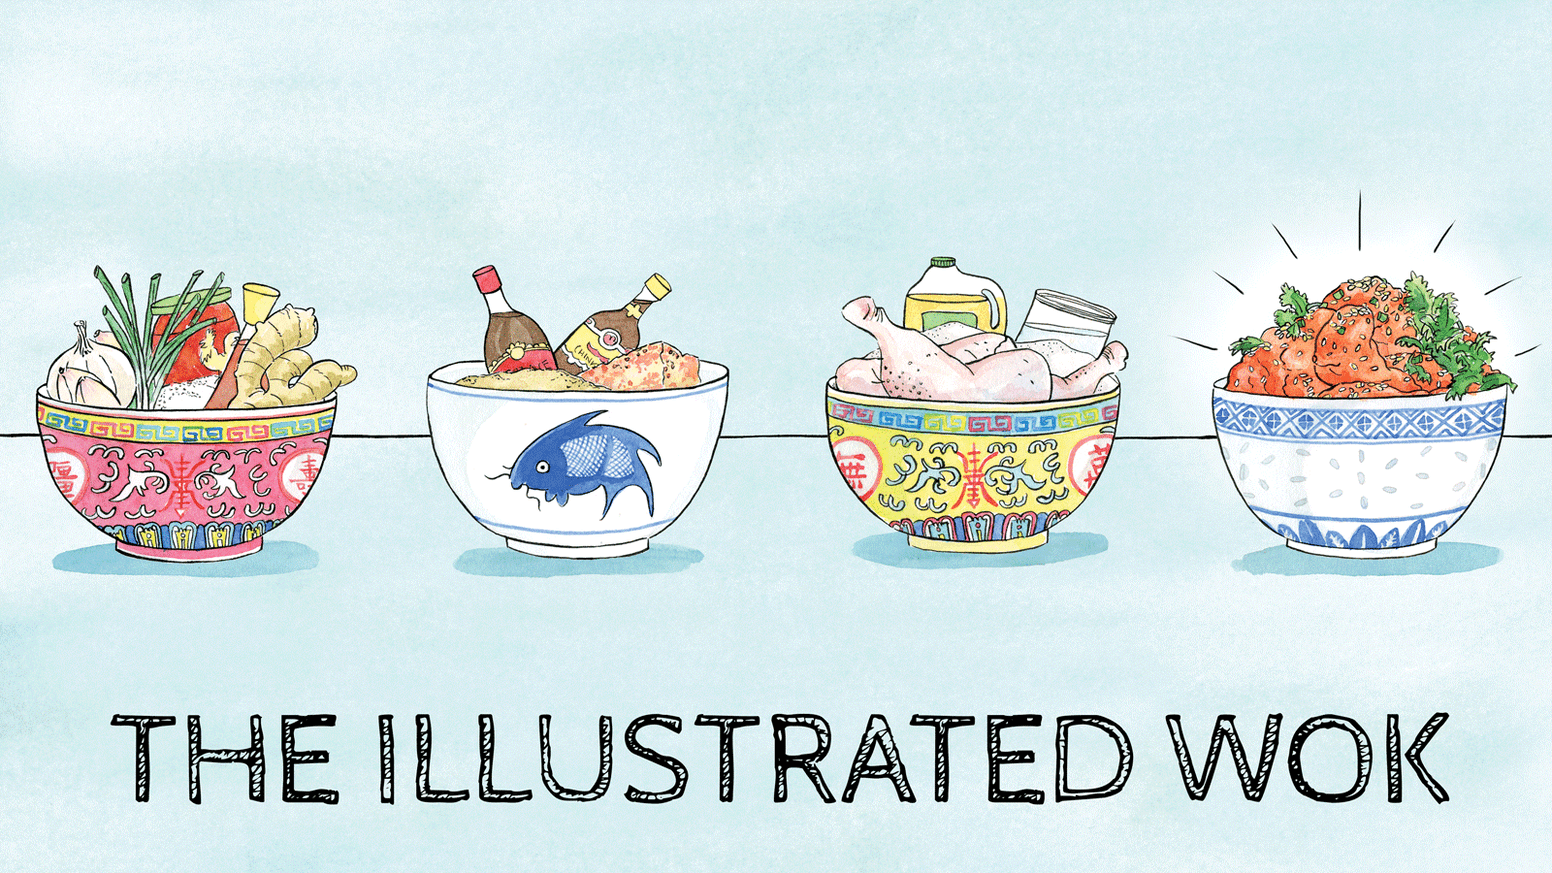 Celebrating the culinary diversity of Chinese cuisine with hand-illustrated recipes drawn from chefs around the world